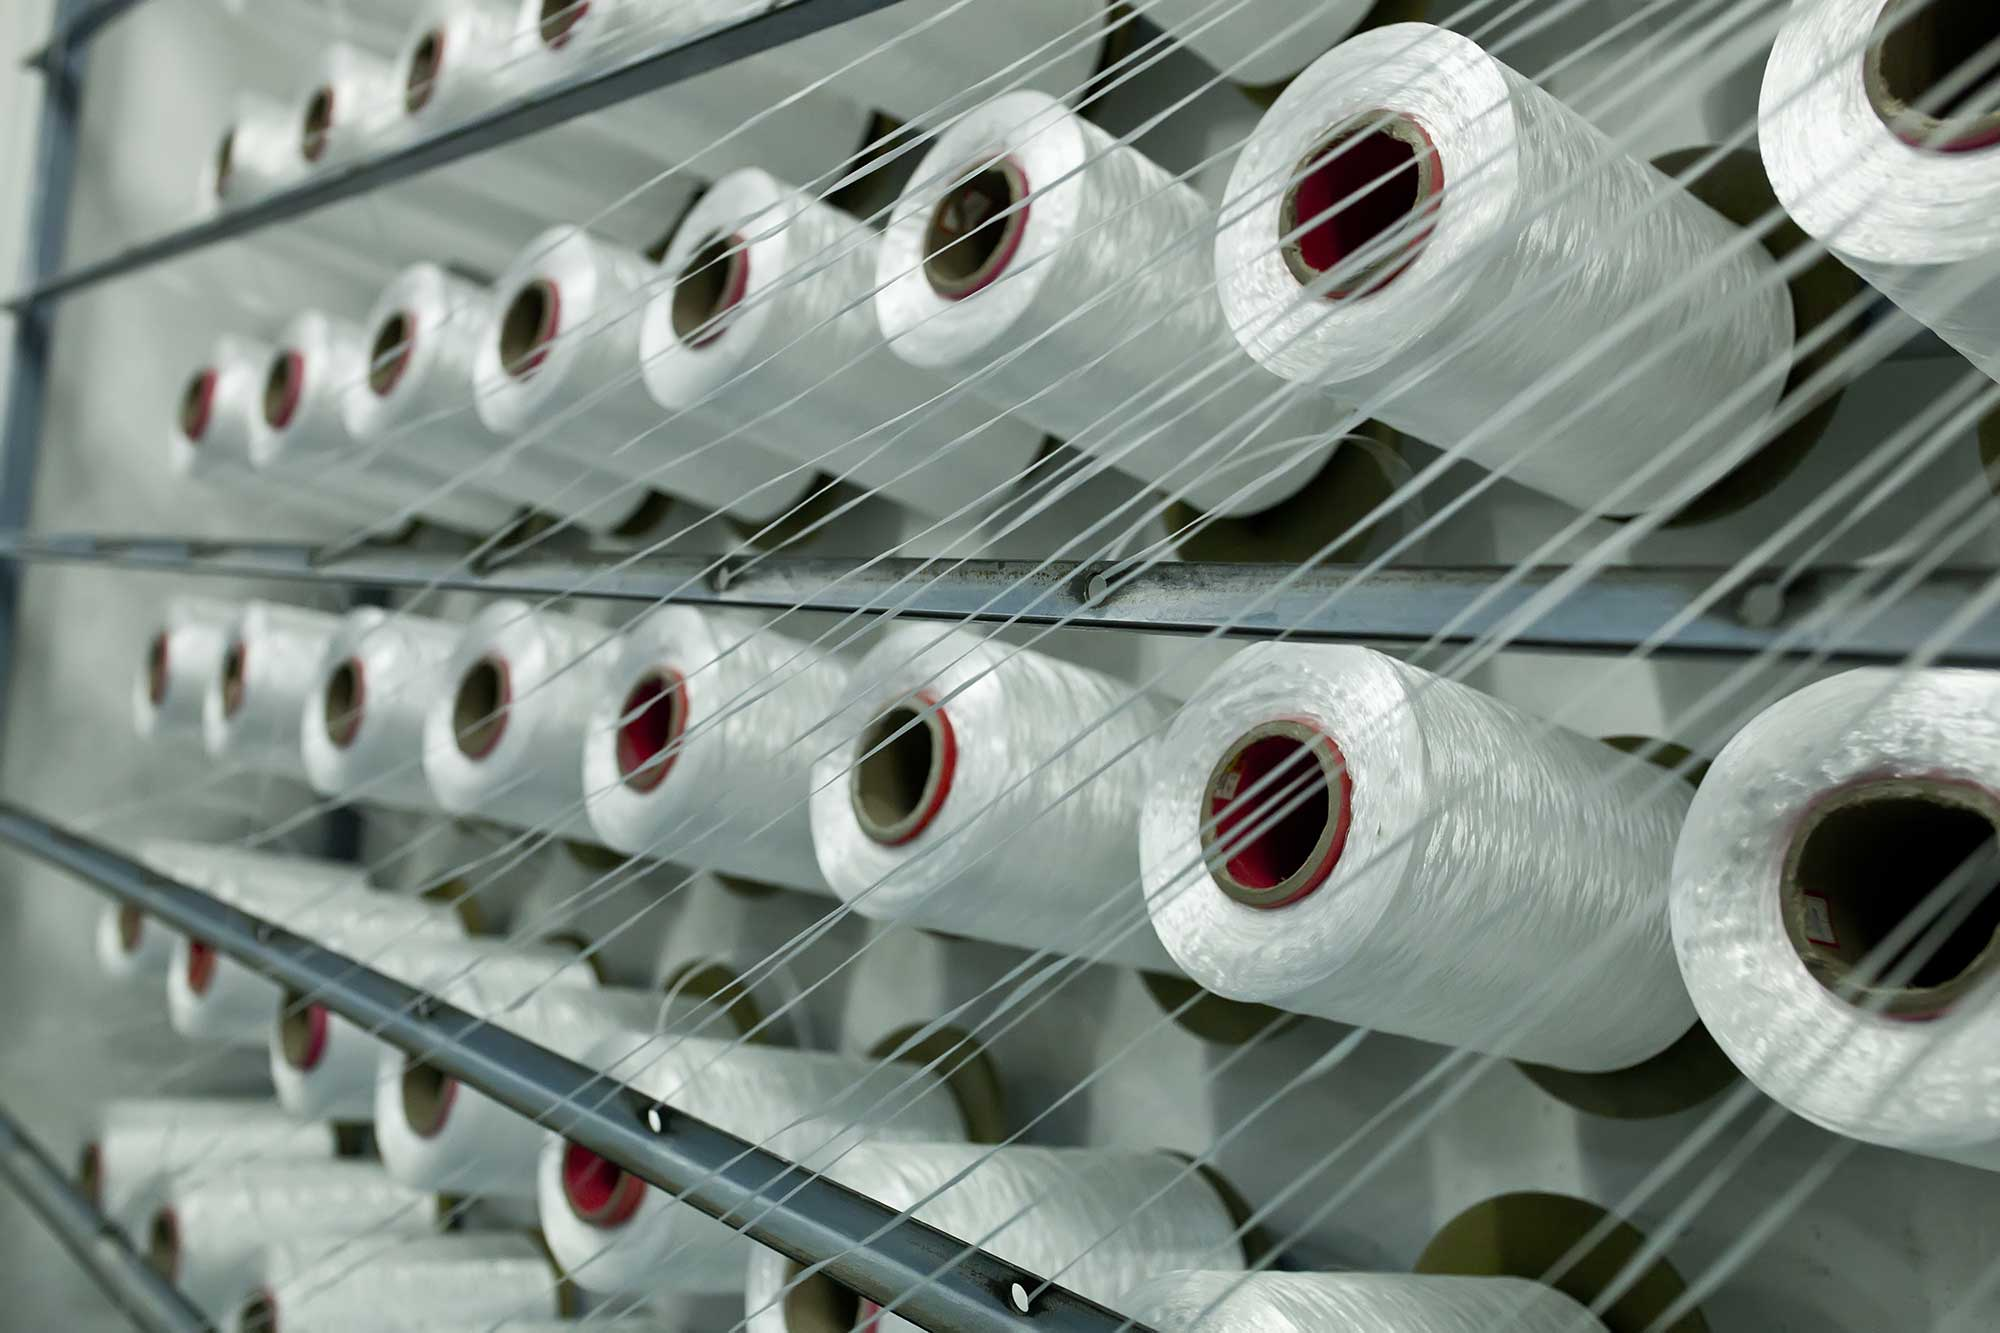 Innovation drives the sustainable fashion industry forward